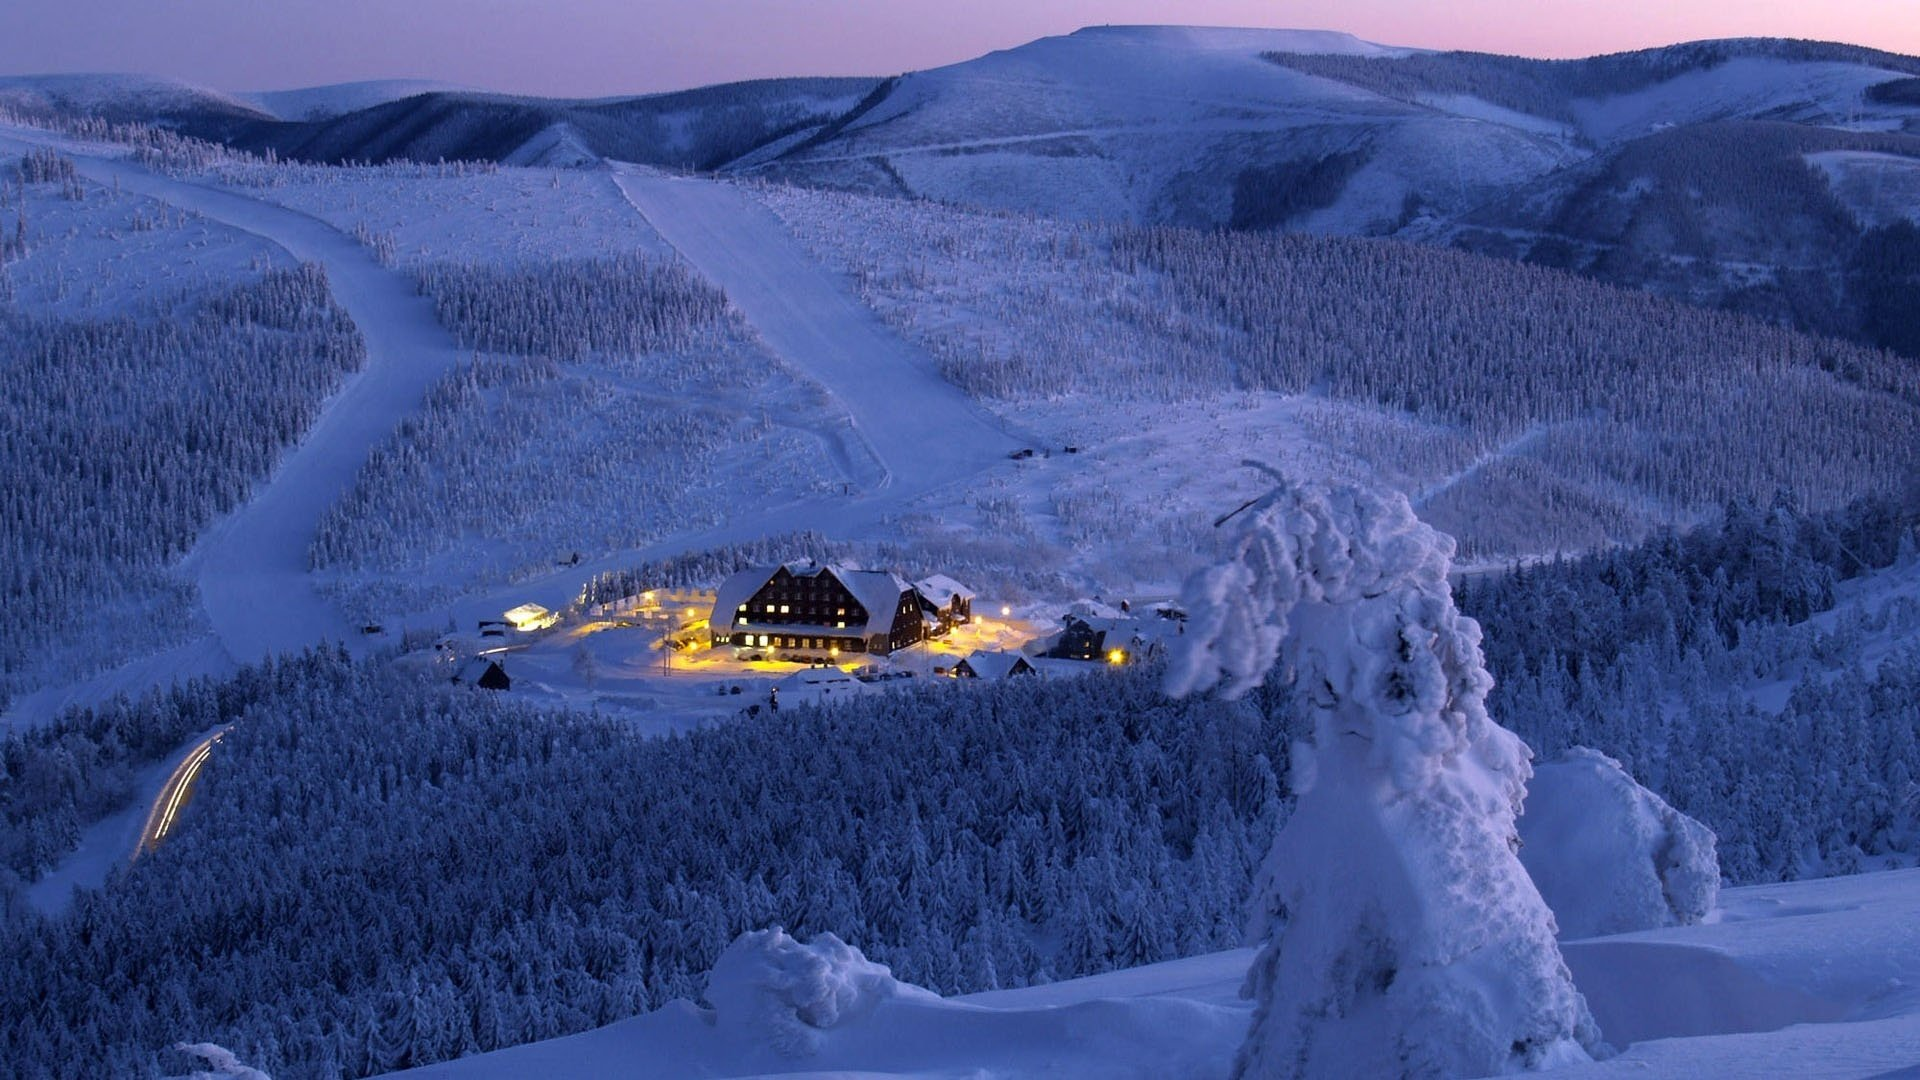 Ski Resort Hd Wallpaper